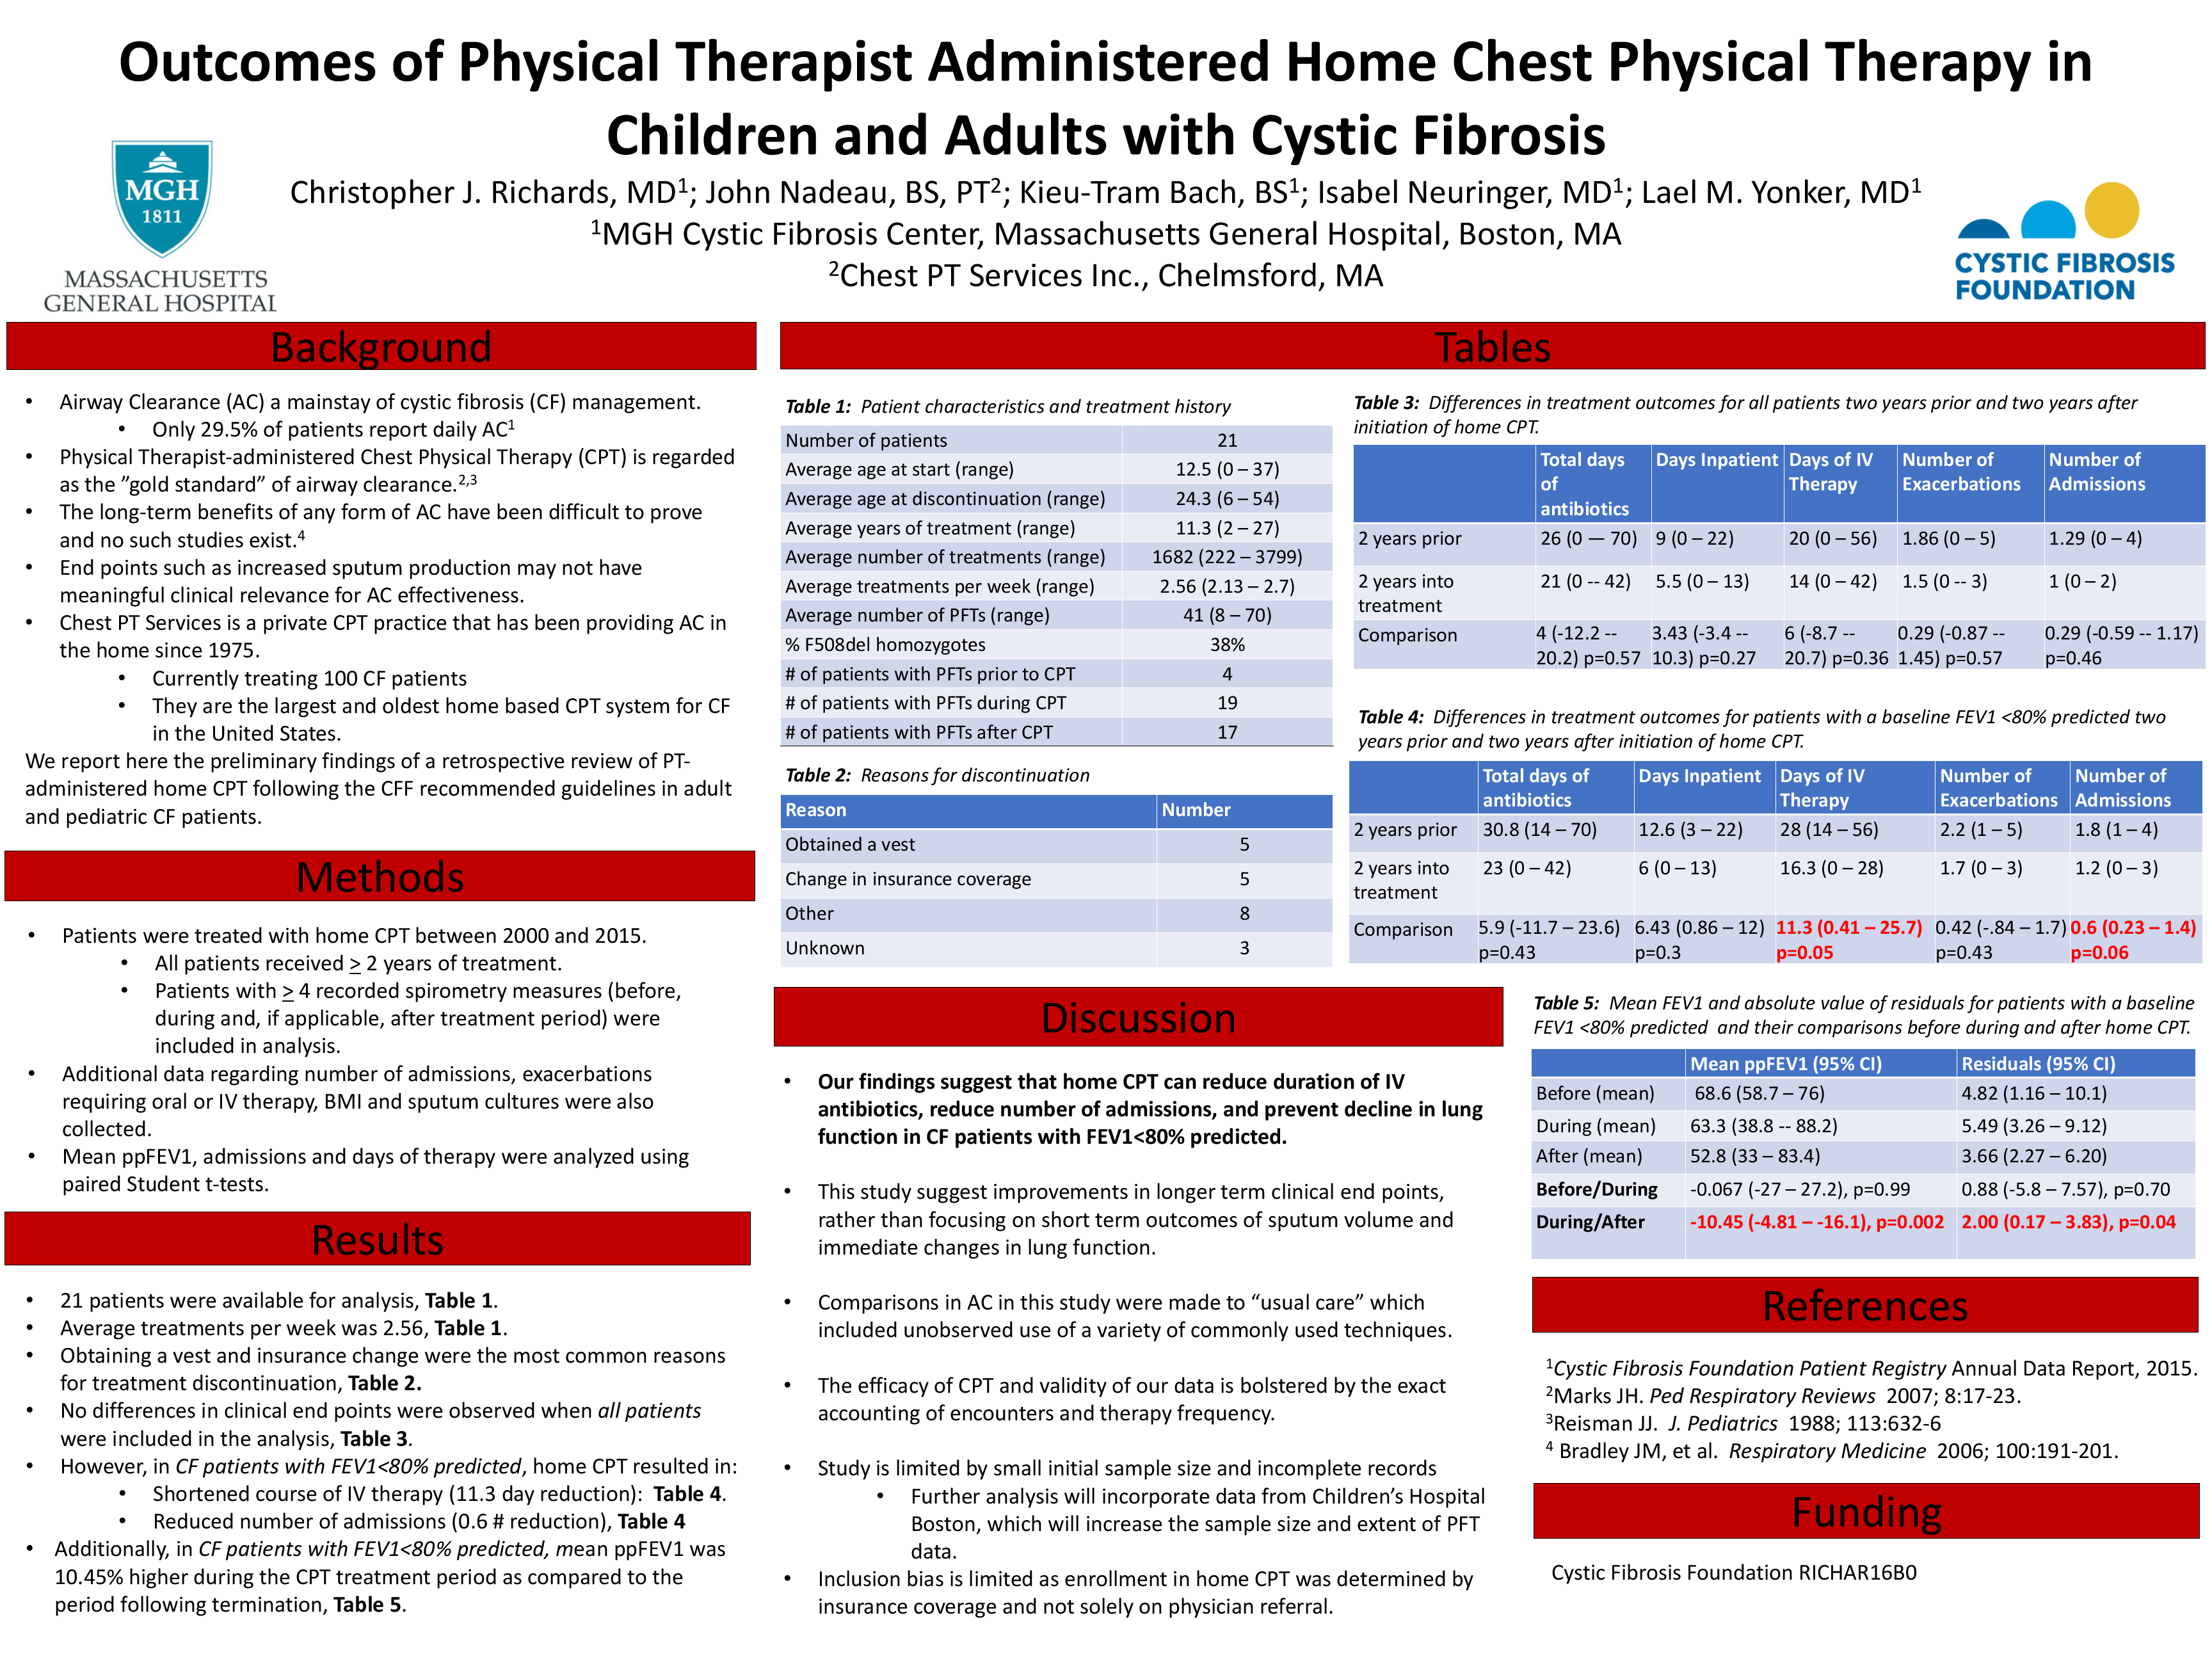 Outcomes of Physical Therapist Administered Home Chest Physical Therapy in Children and Adults with Cystic Fibrosis